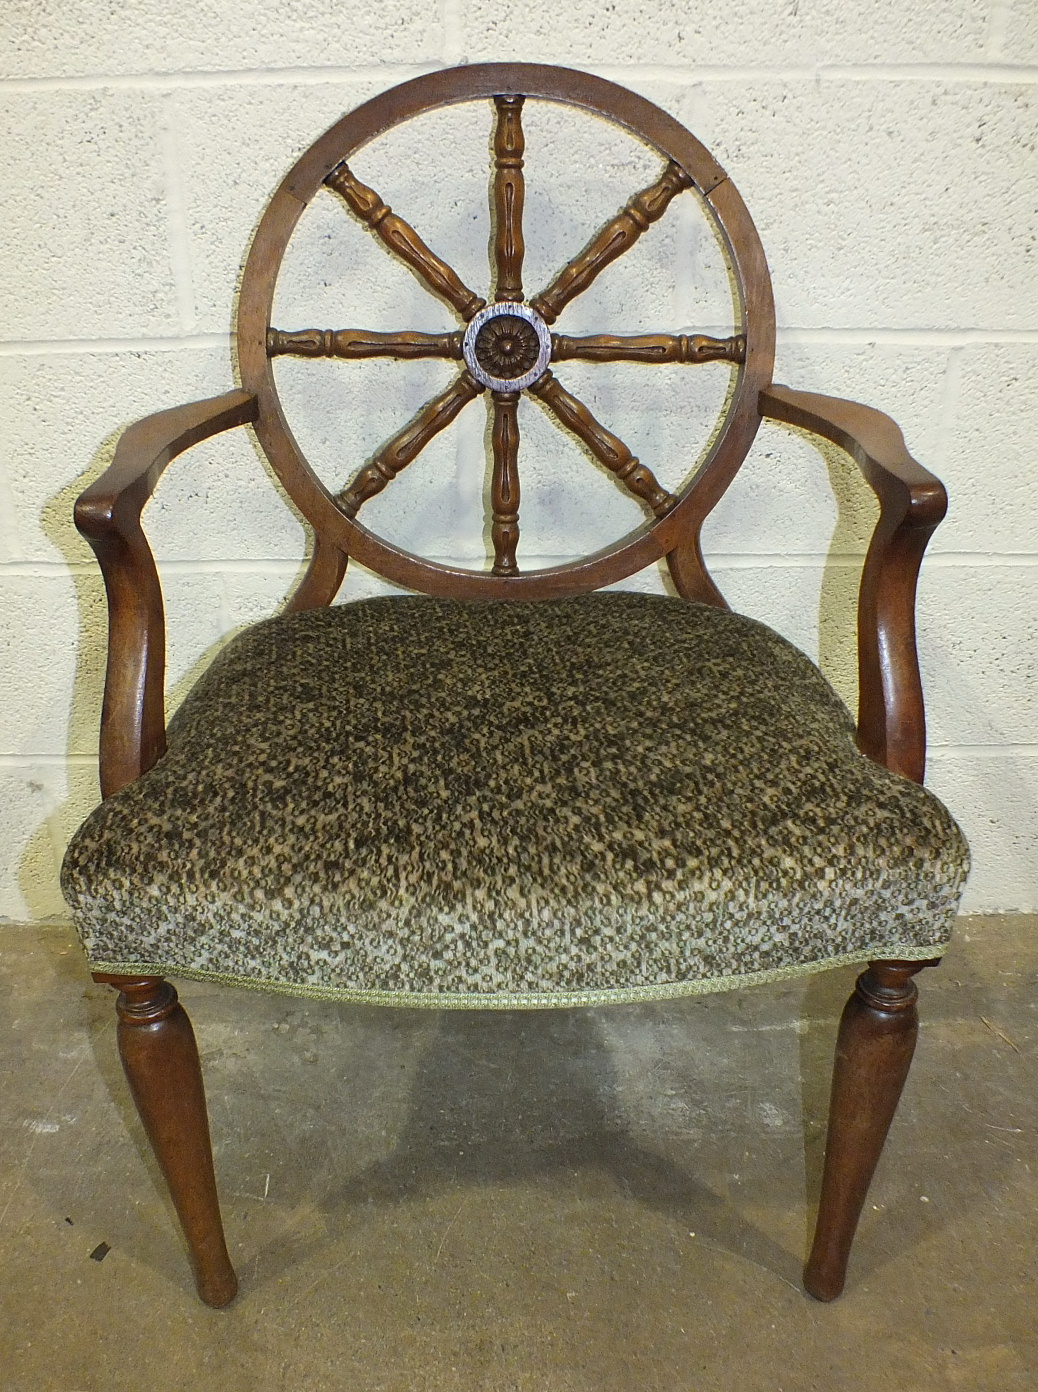 Lot 32 - A set of four late-19th century hardwood armchairs, each with upholstered seat and circular back